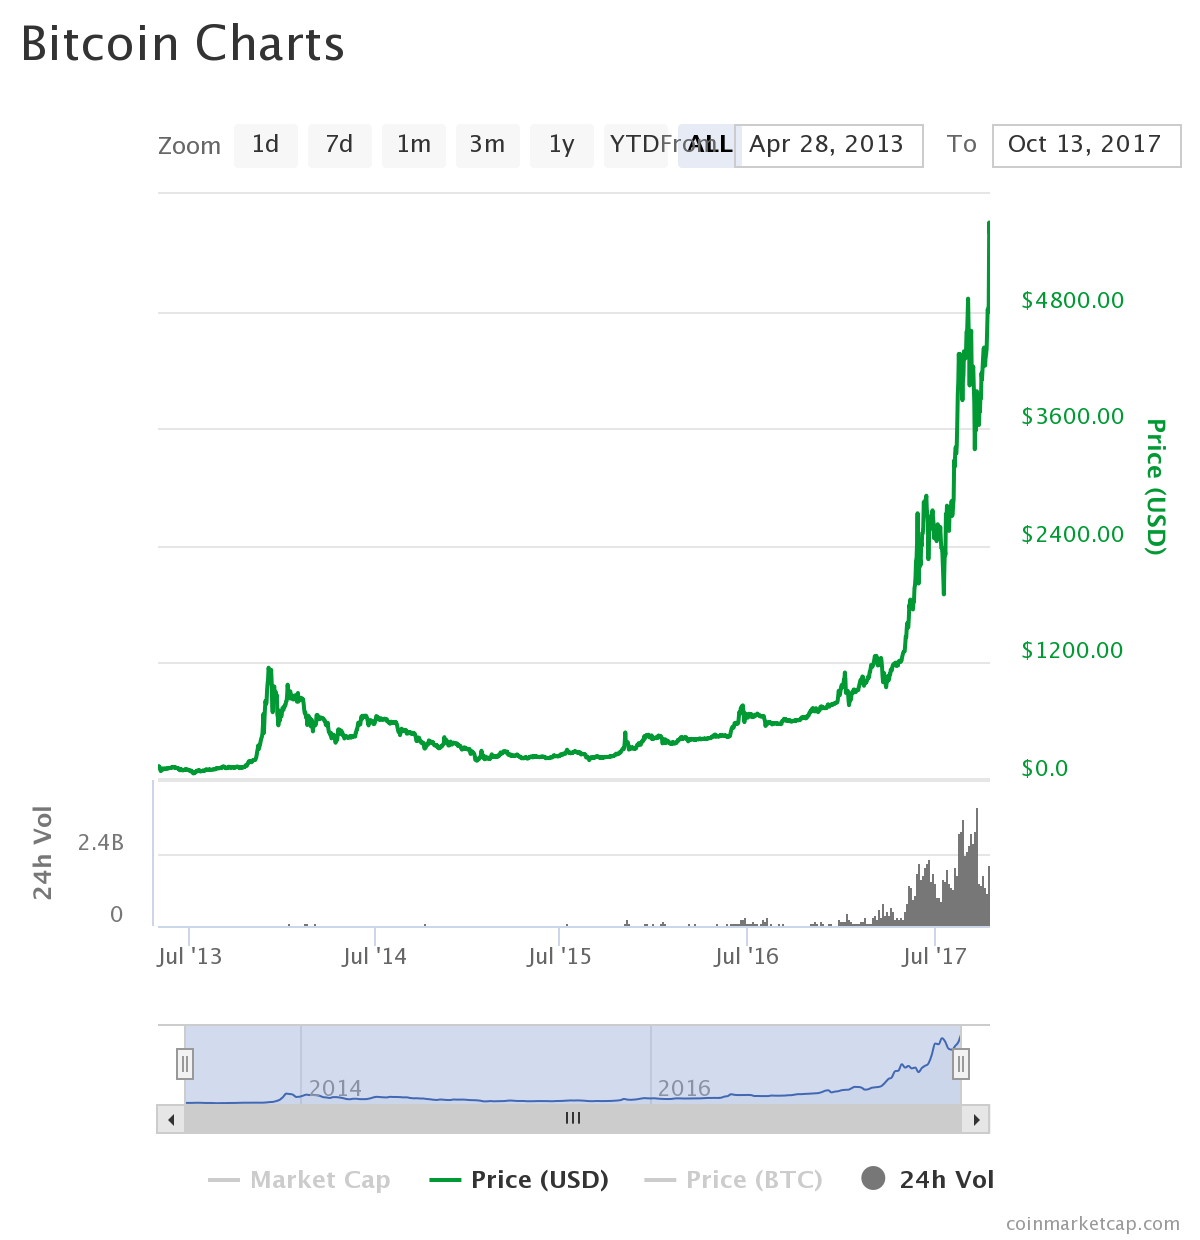 Bitcoin Price Reaches All Time High